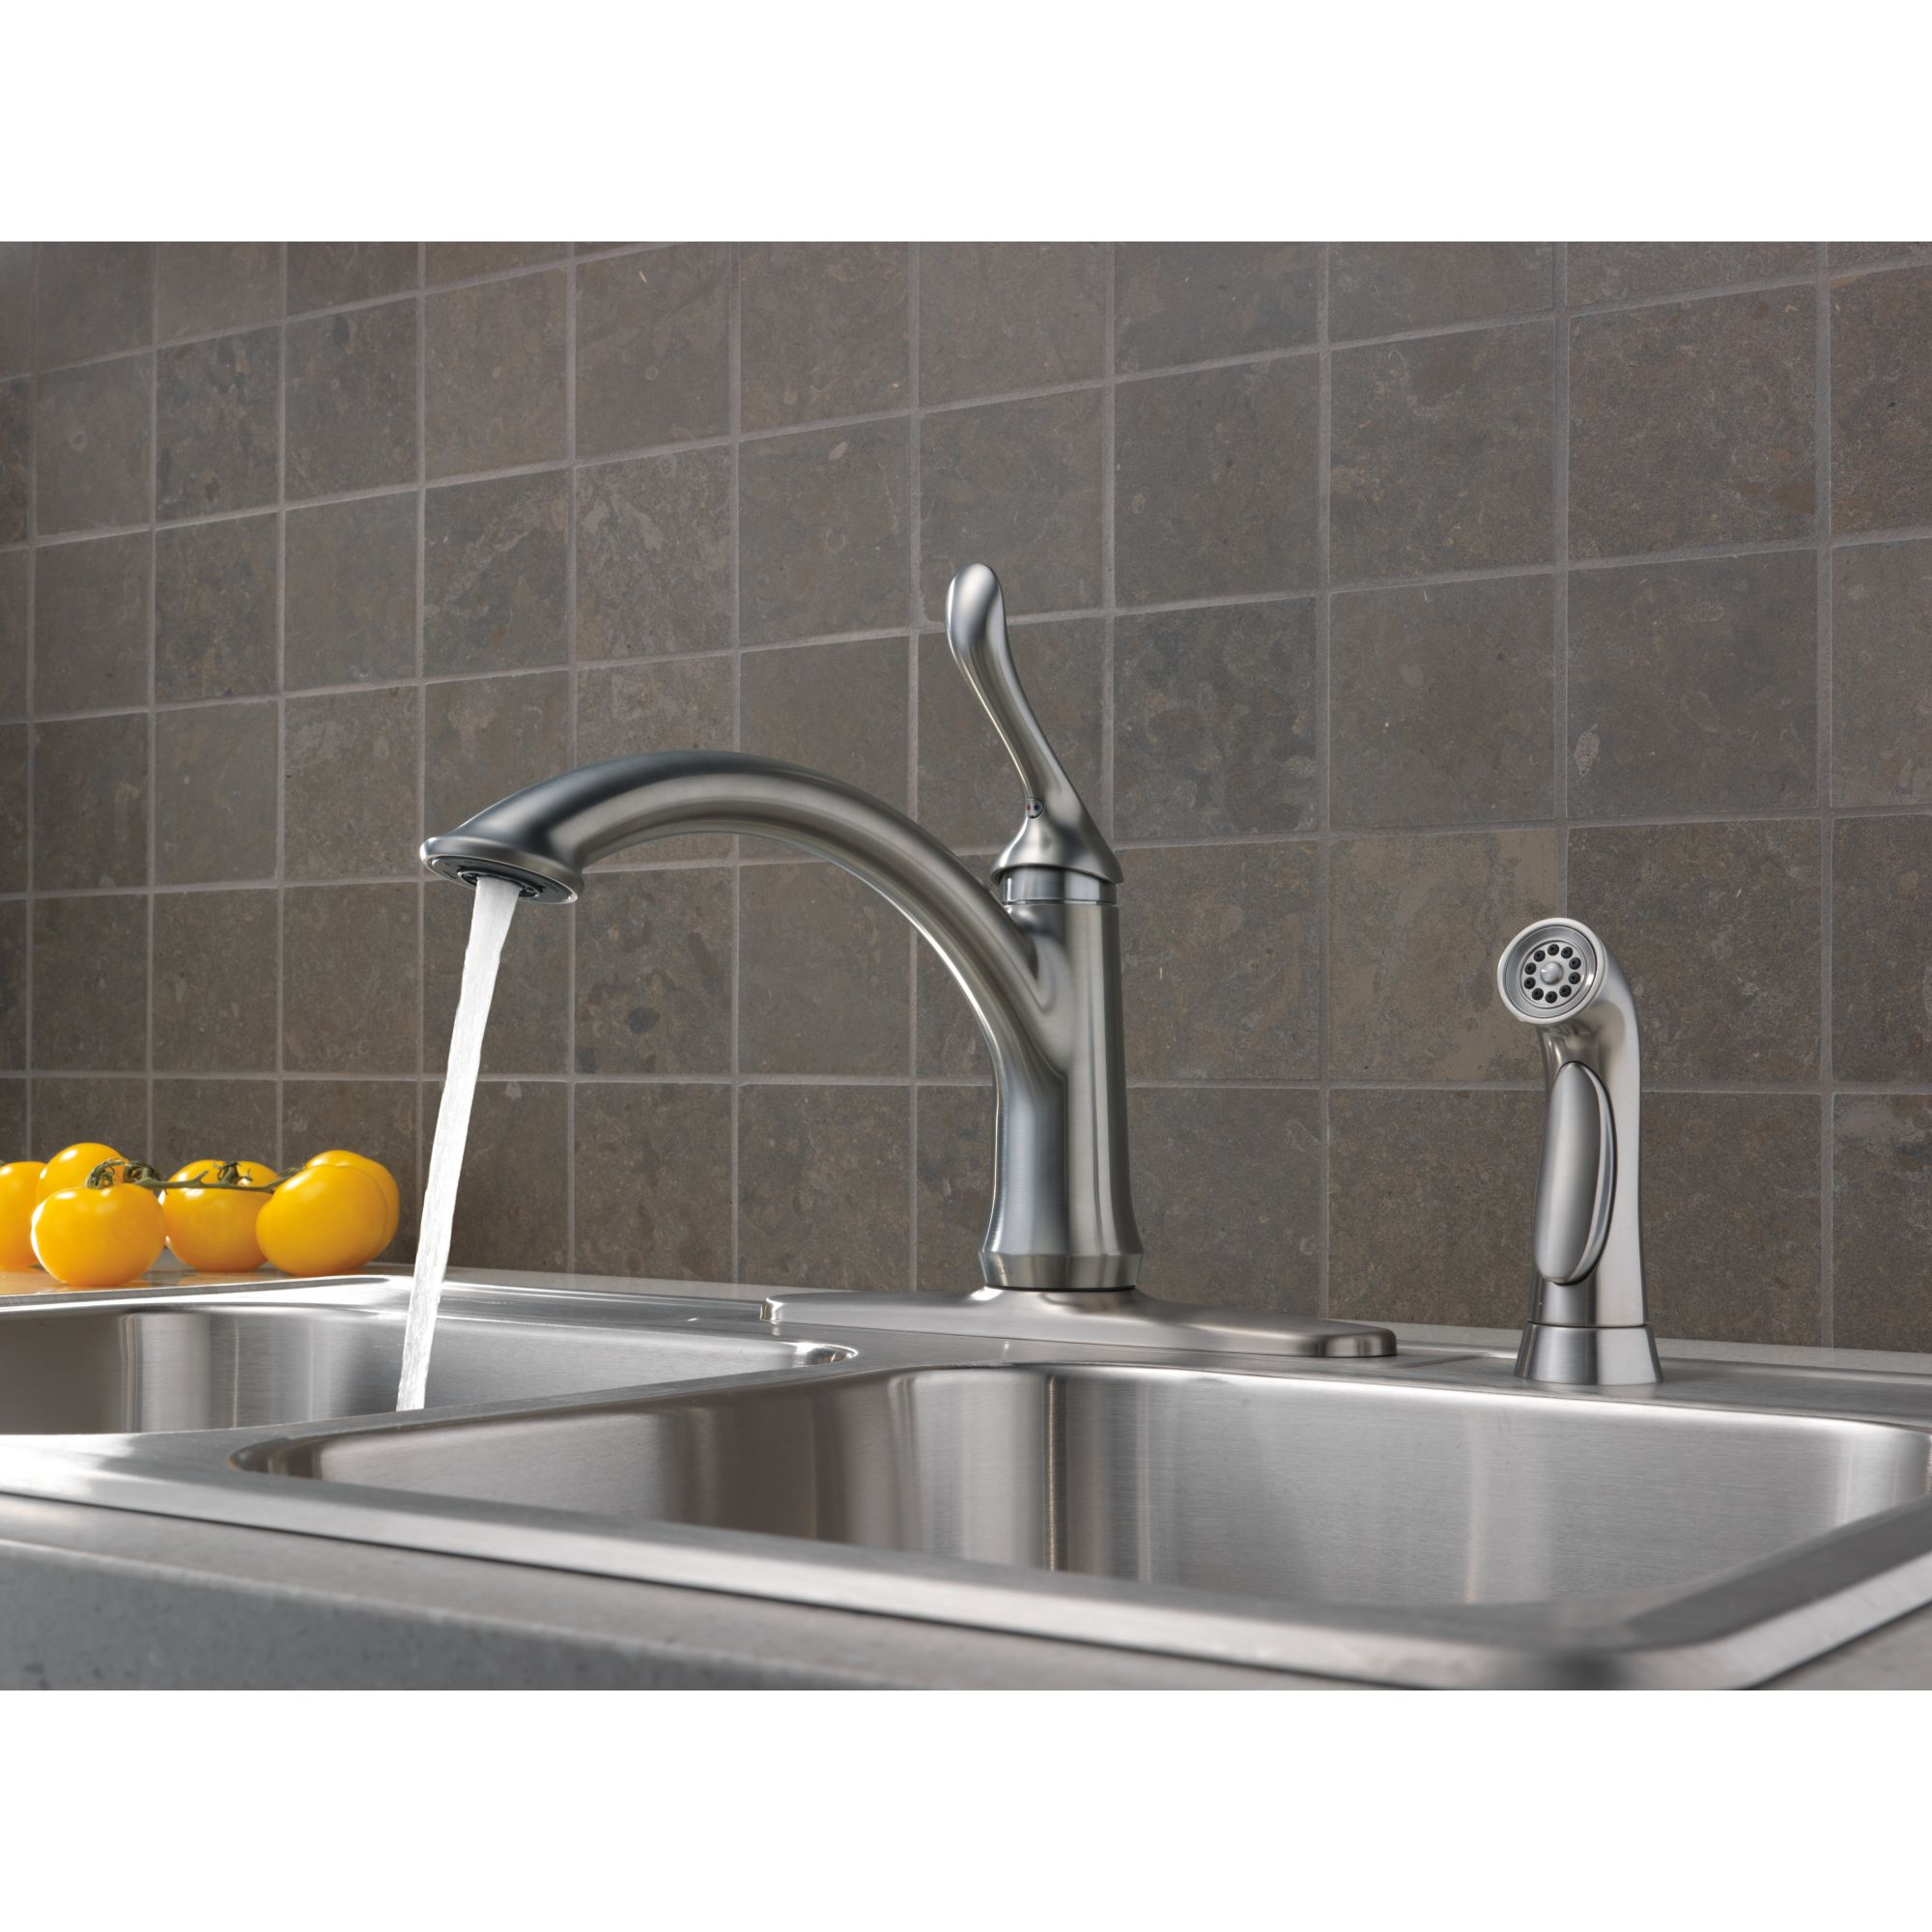 delta linden kitchen faucet - dynasty bathrooms